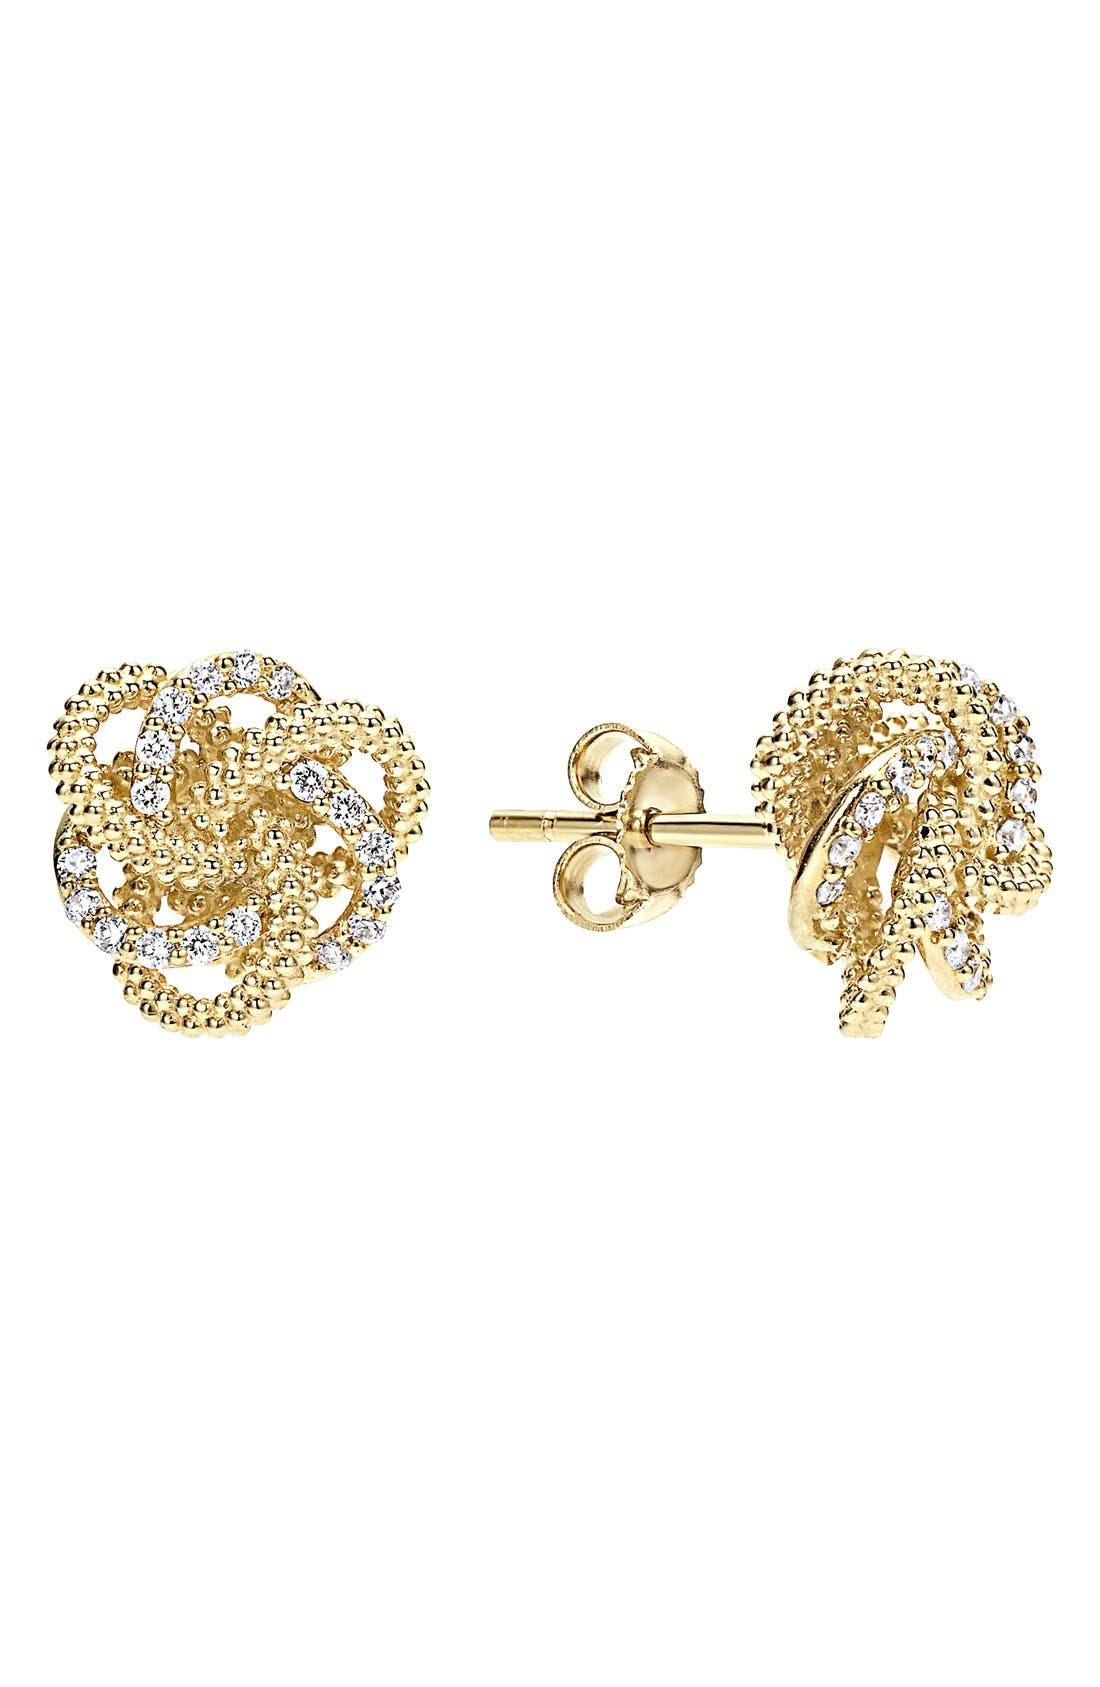 'Love Knot' Diamond Stud Earrings,                             Main thumbnail 1, color,                             GOLD